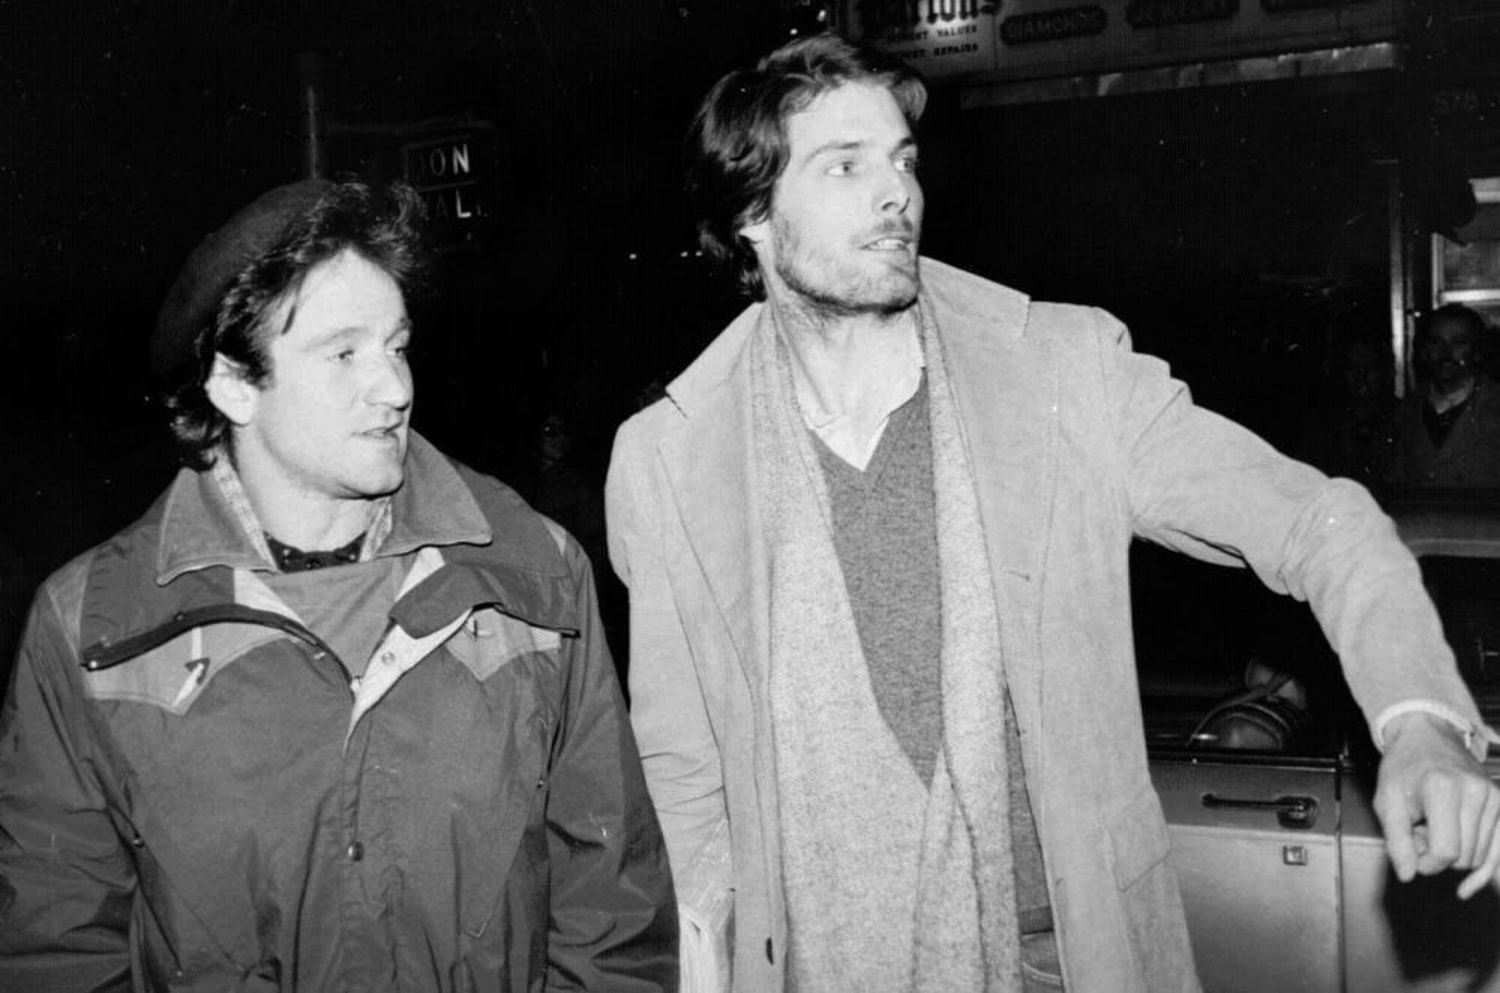 Robin Williams and Christopher Reeve attempt to hail a taxicab in New York City on Feb. 9, 1981. |  Photo by Steve Sands